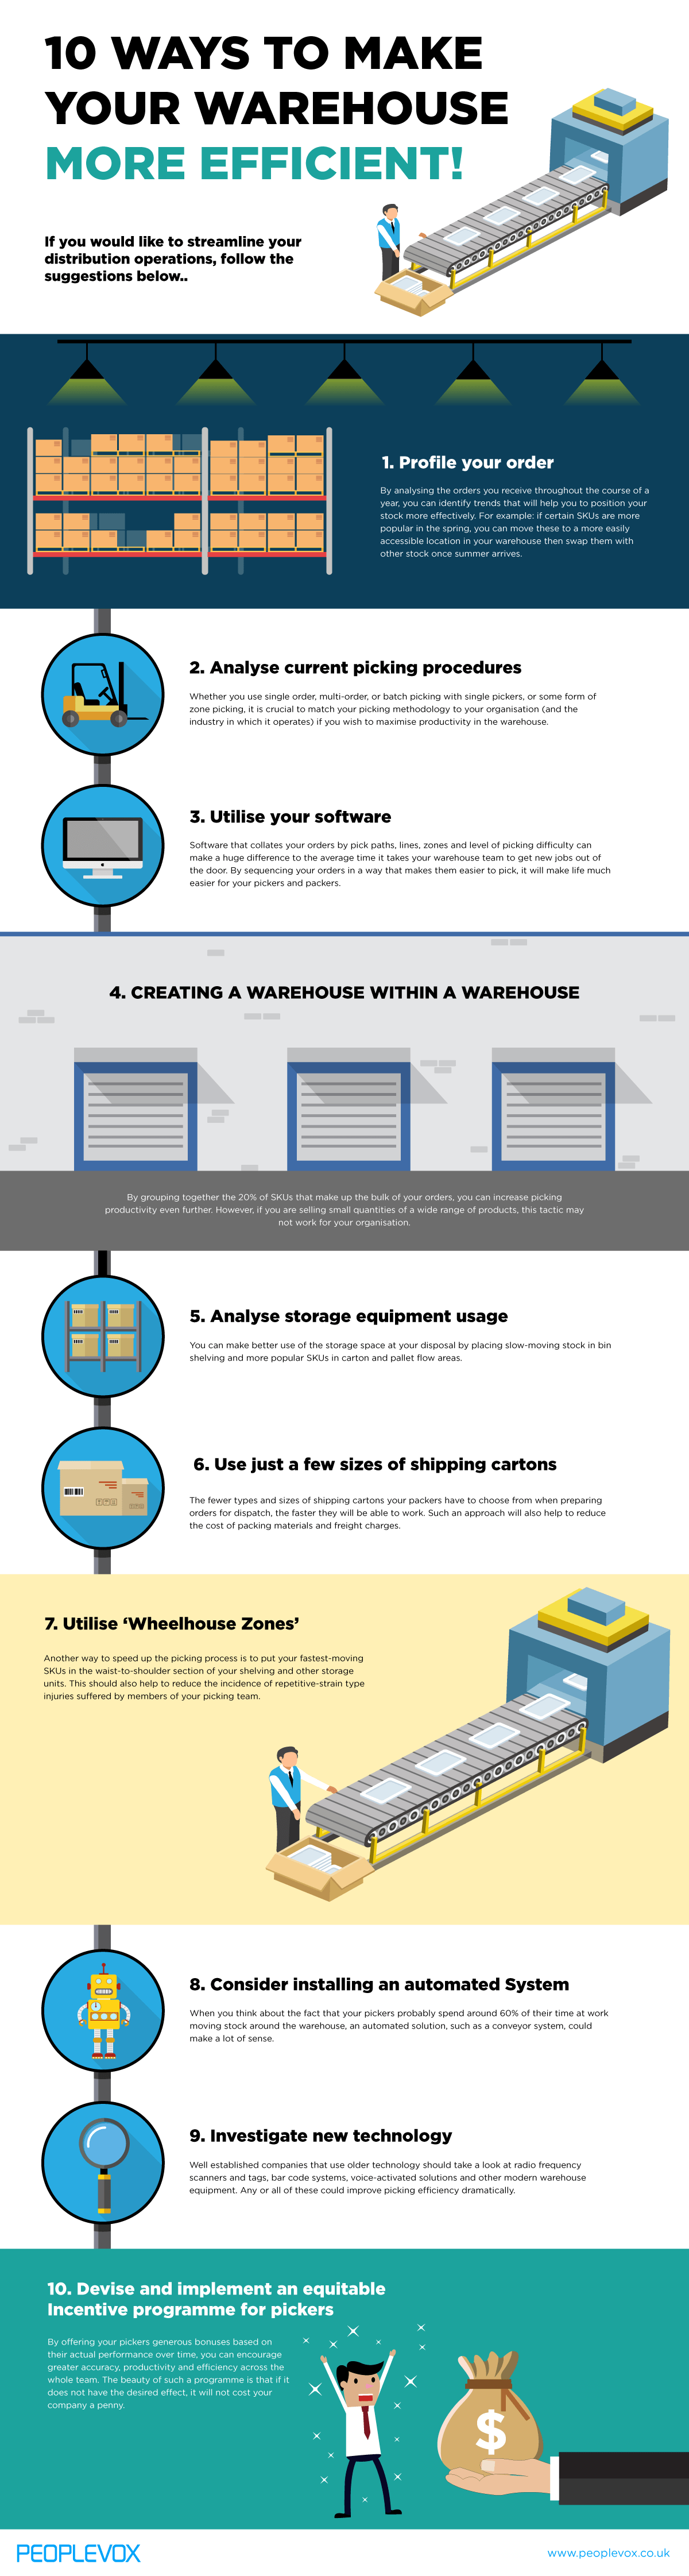 Ways to Improve Warehouse Efficiency and Reduce Costs